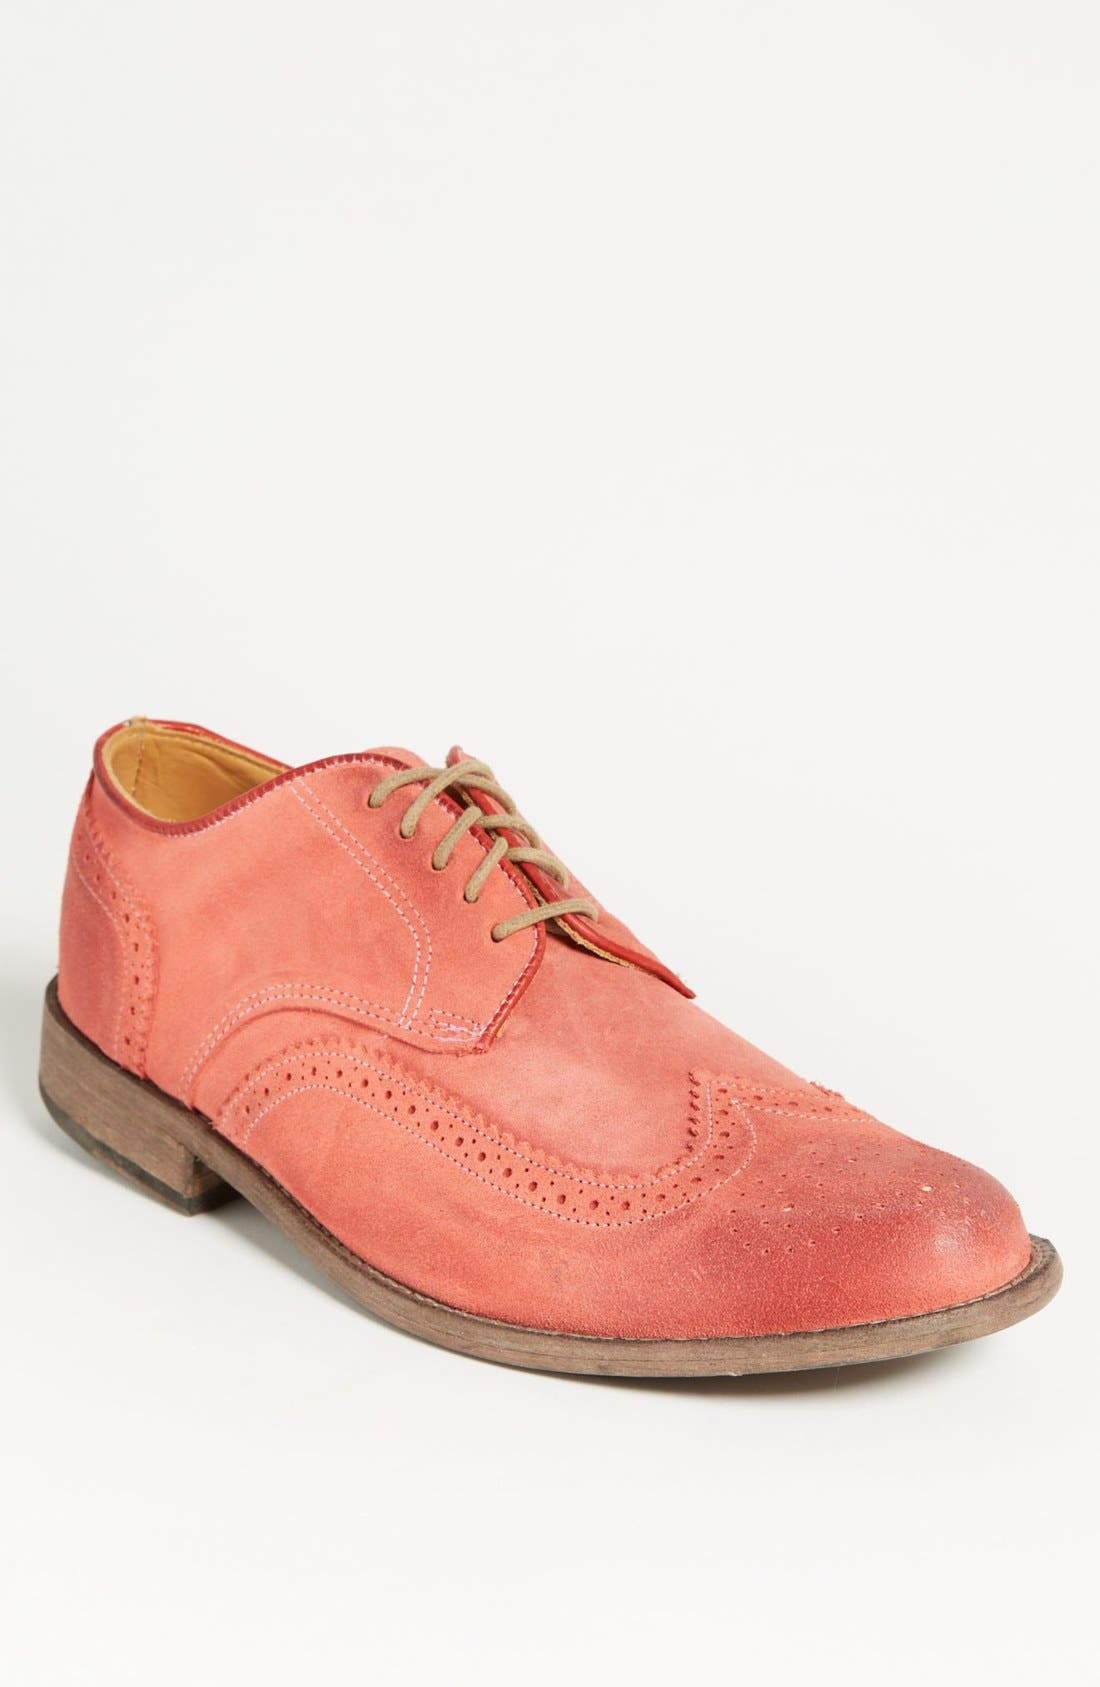 Alternate Image 1 Selected - Vintage Shoe Company 'Warren' Wingtip